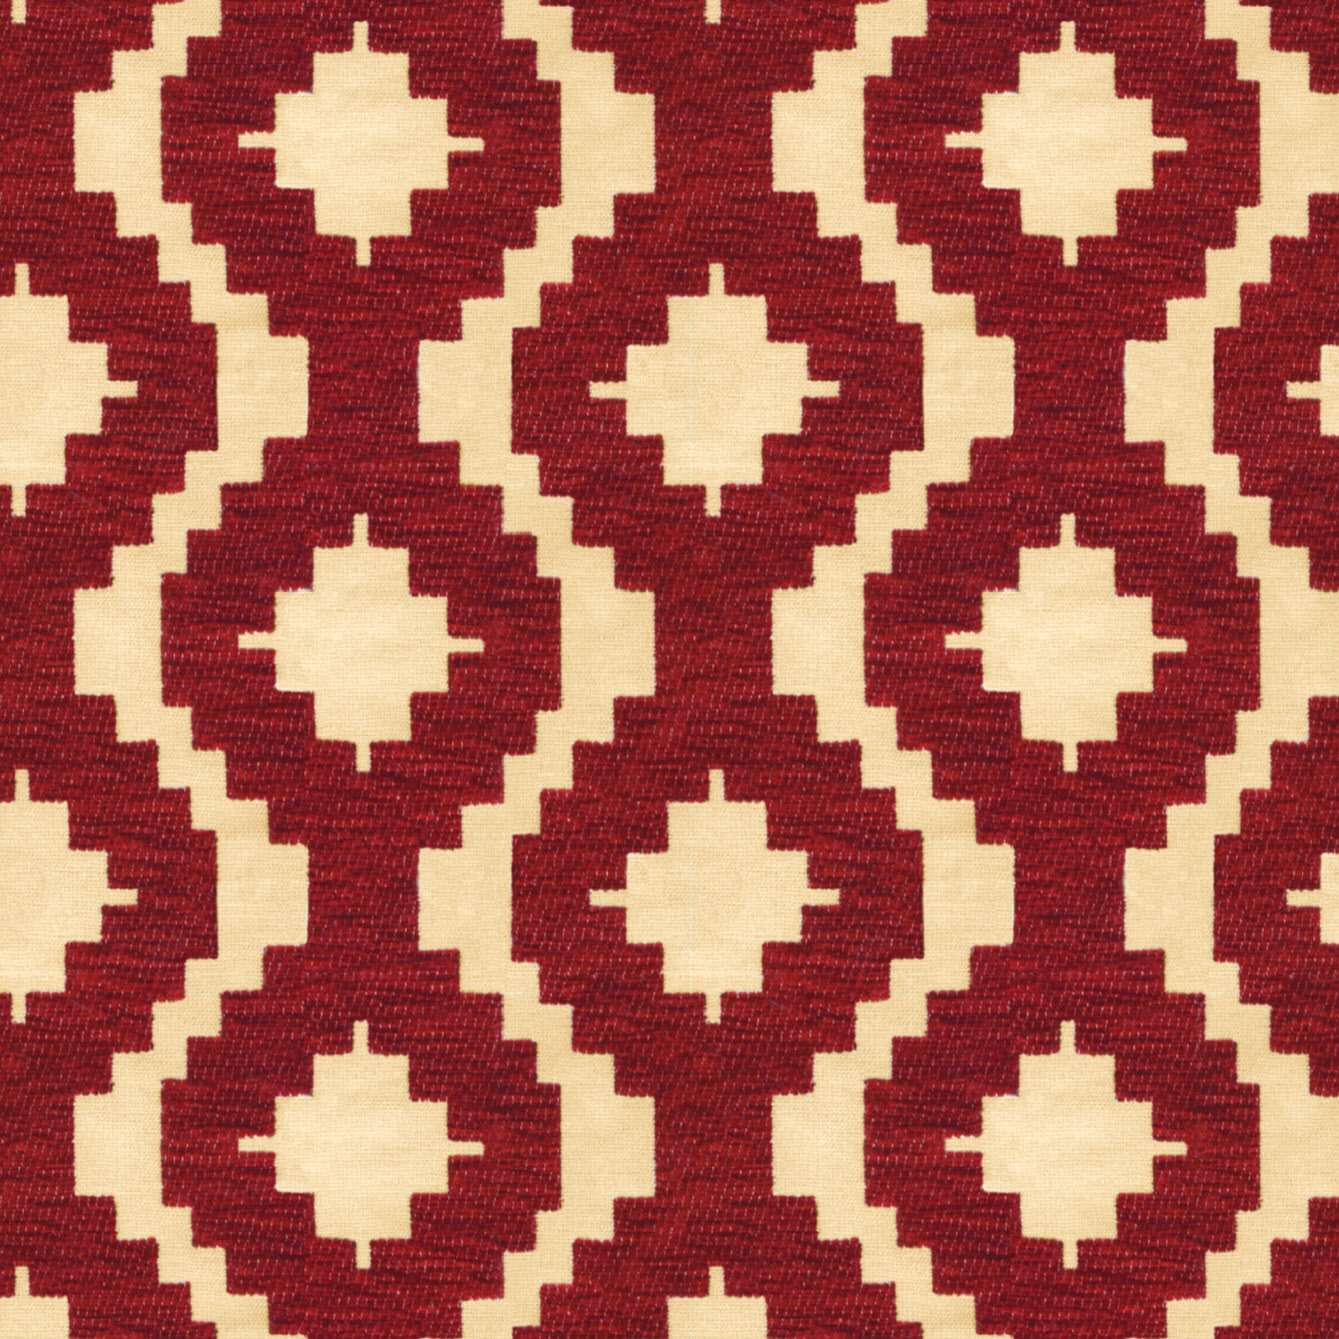 McAlister Textiles Arizona Geometric Red Roman Blind Roman Blinds